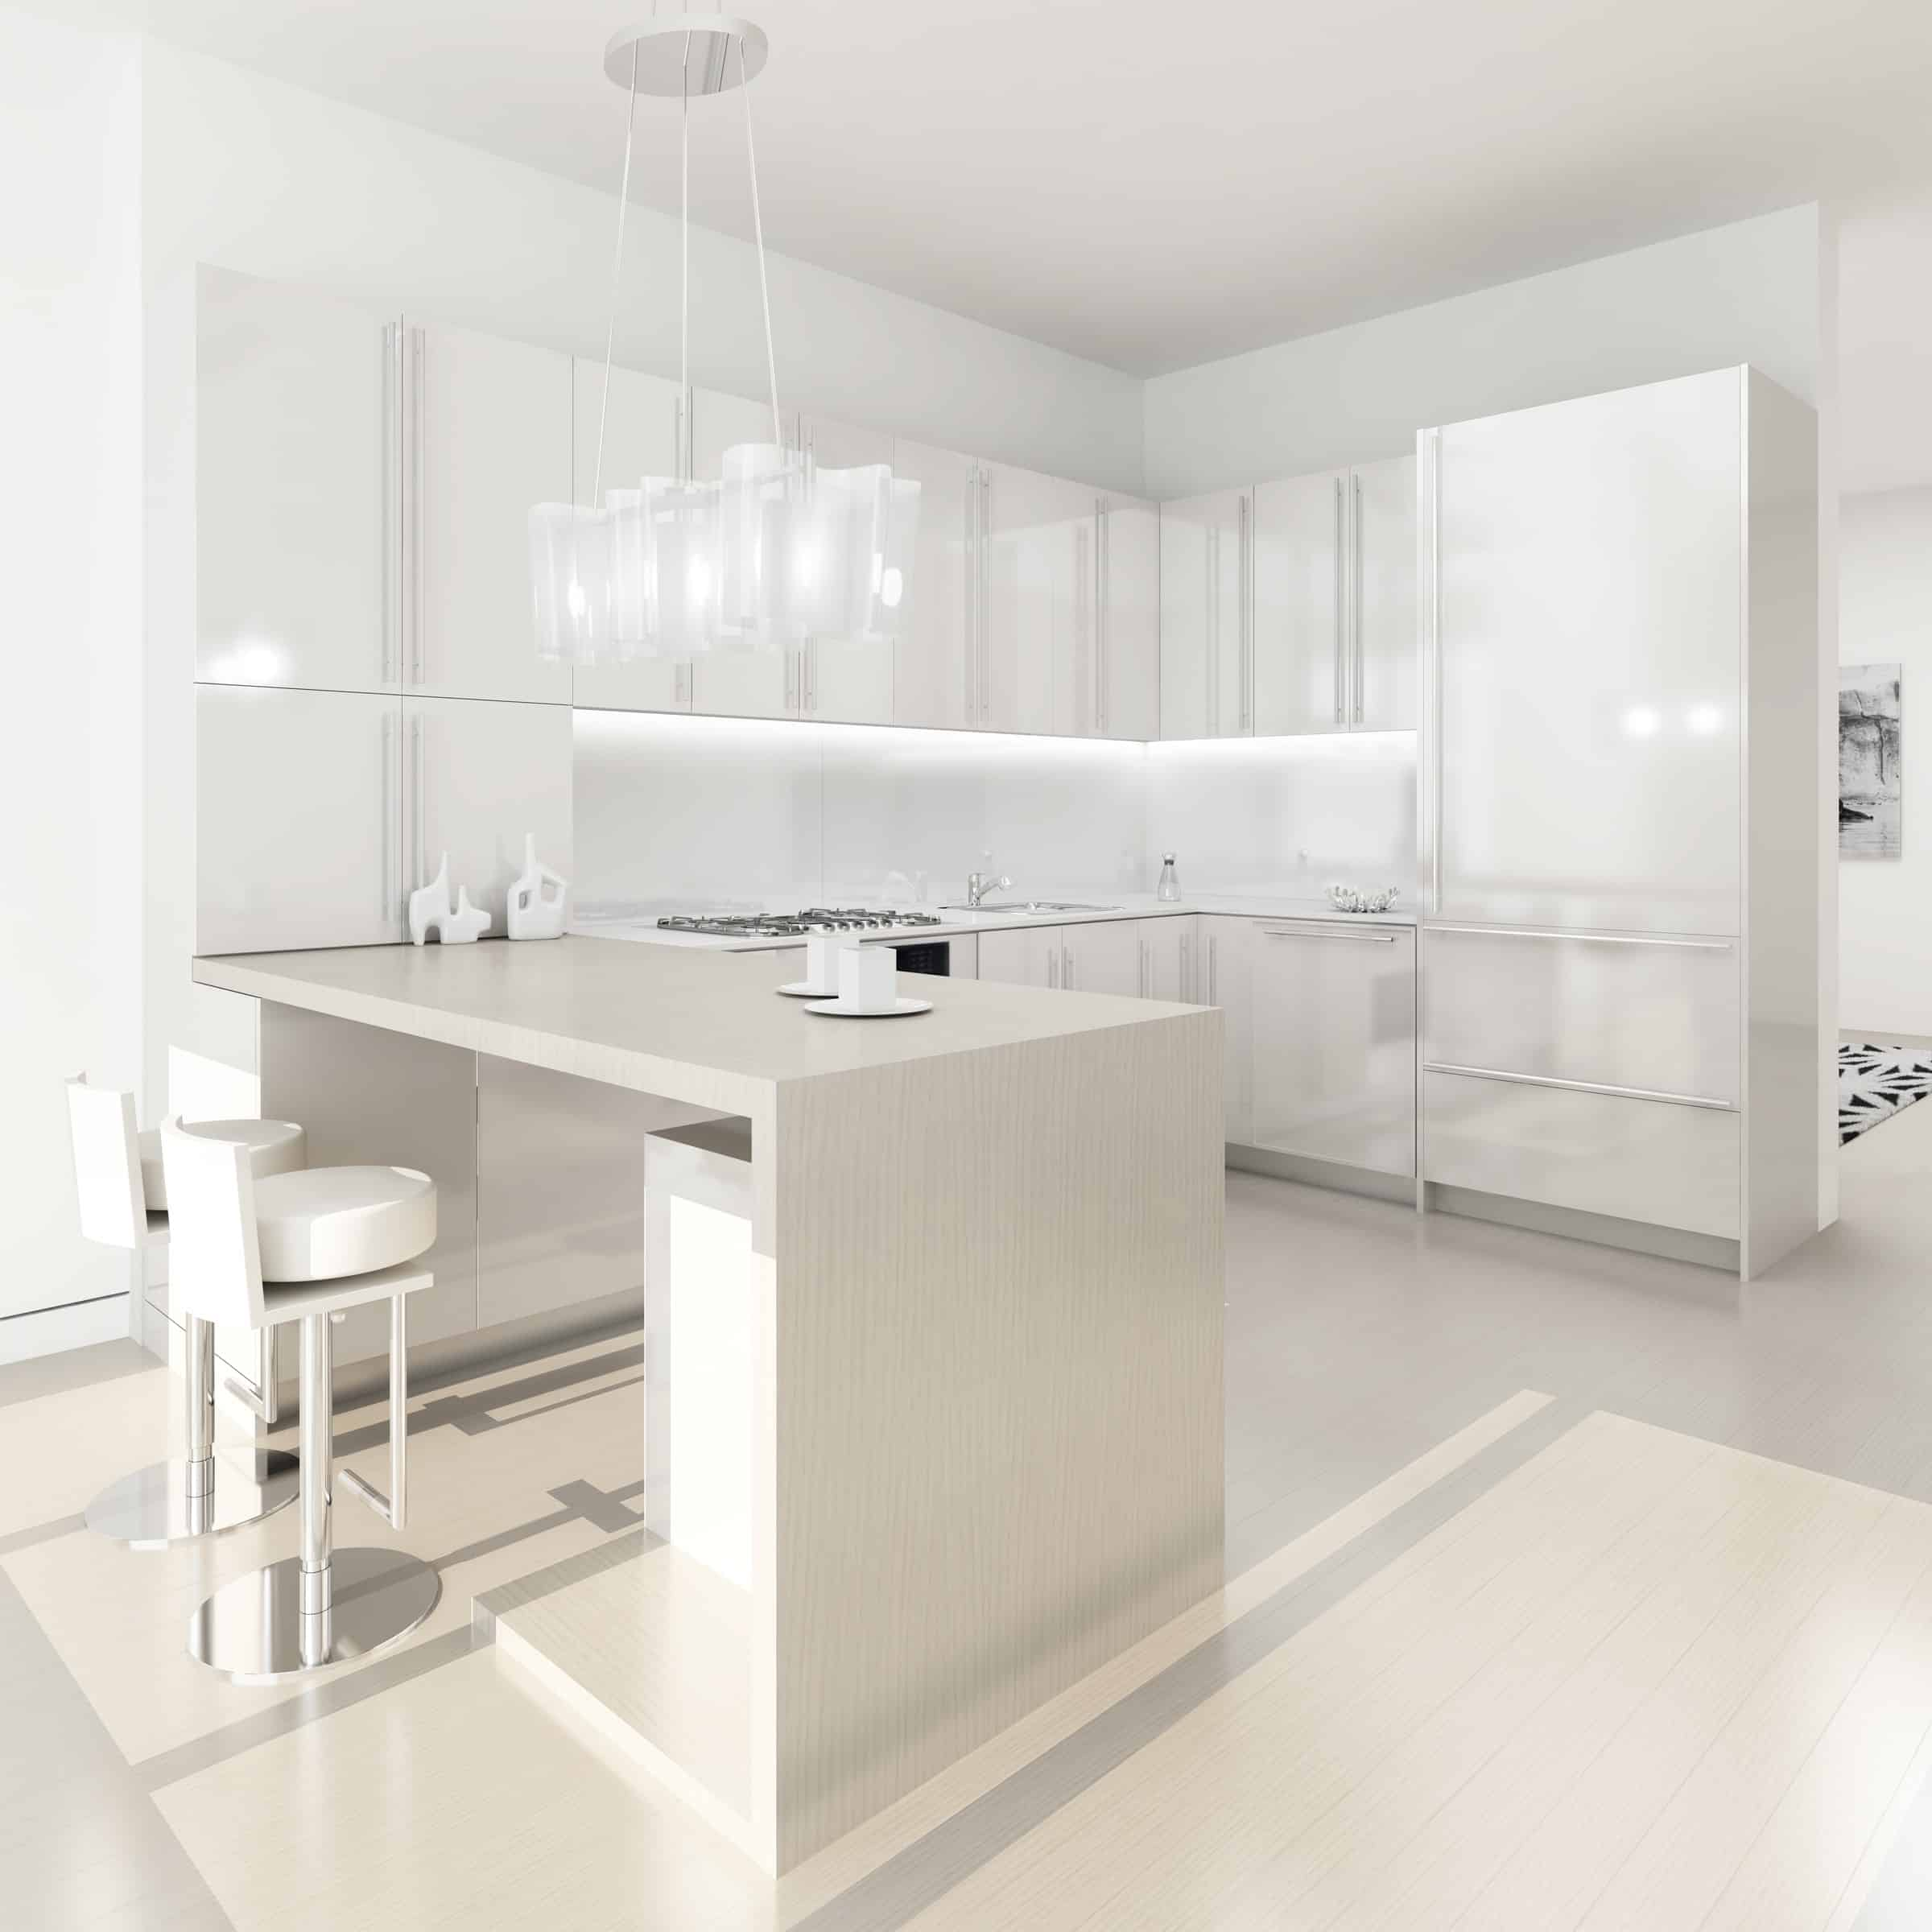 modern kitchen bar stools sinks stainless steel trendy island stool ideas view in gallery counter